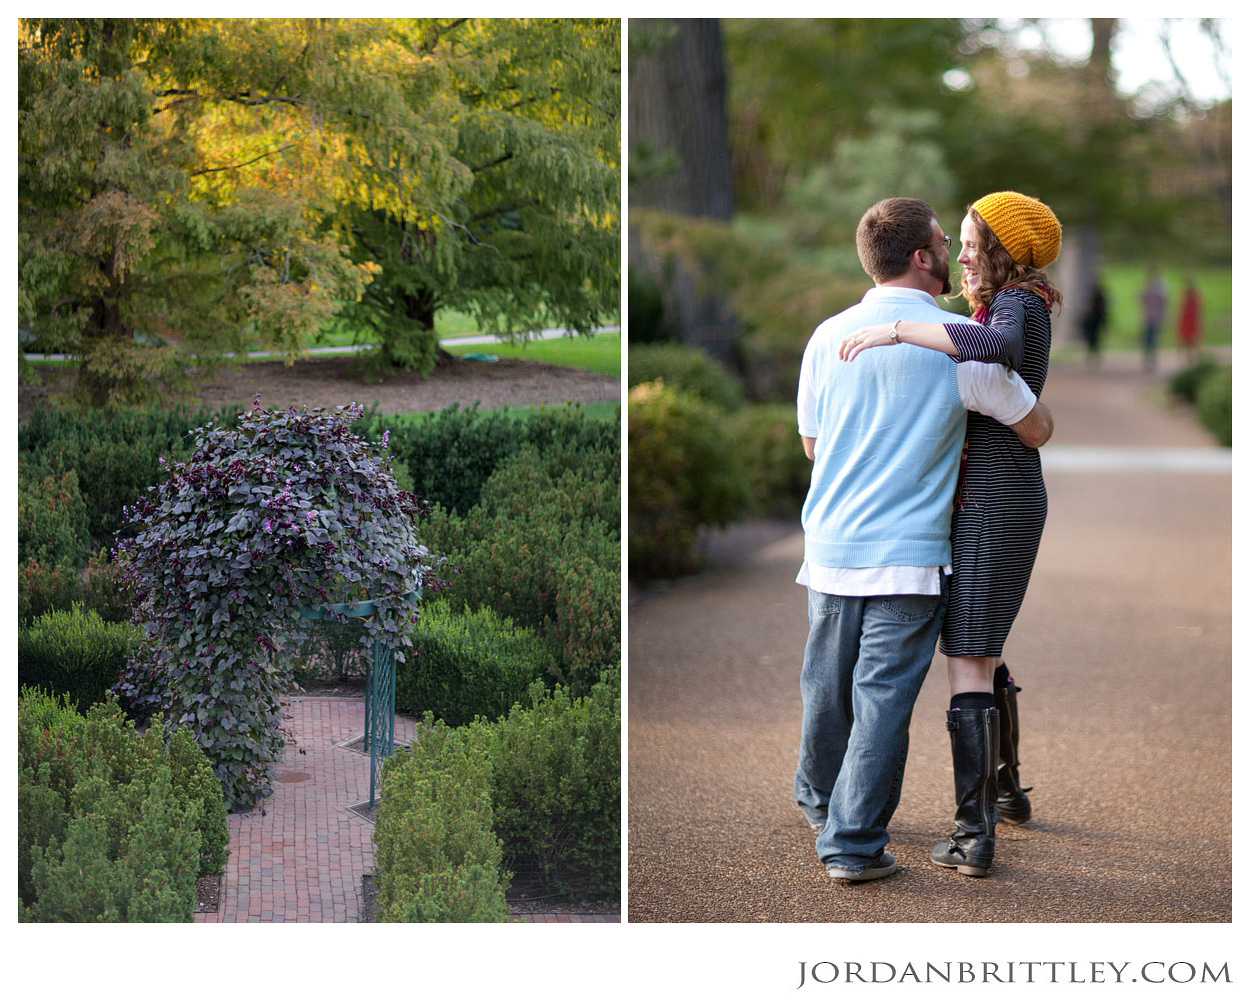 Missouri Engagement, Botanical Gardens Proposal, Engagement, Engagement Photographer, Wedding Photographer, St Louis Wedding Photographer, International Wedding Photographer, Missouri Wedding Photographer, Garden Engagement, Jordan Brittley, Botanical Gardens